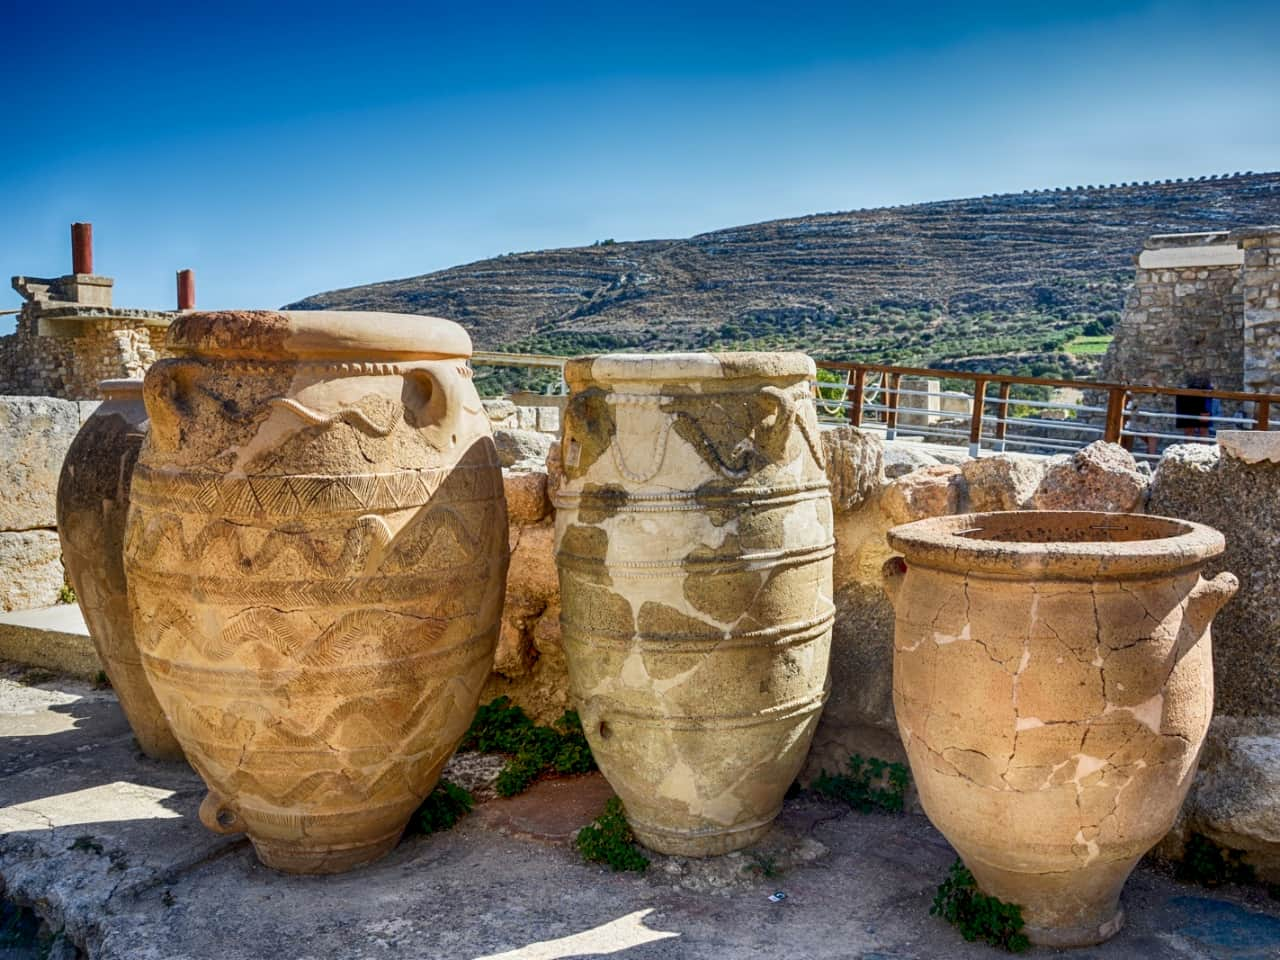 meet the minotaur, Palace of Knossos and the Archaeological Museum of Heraklion, historical tour knossos, historical tour heraklion crete, chania excursion tour to knossos and archaeological museum heraklion